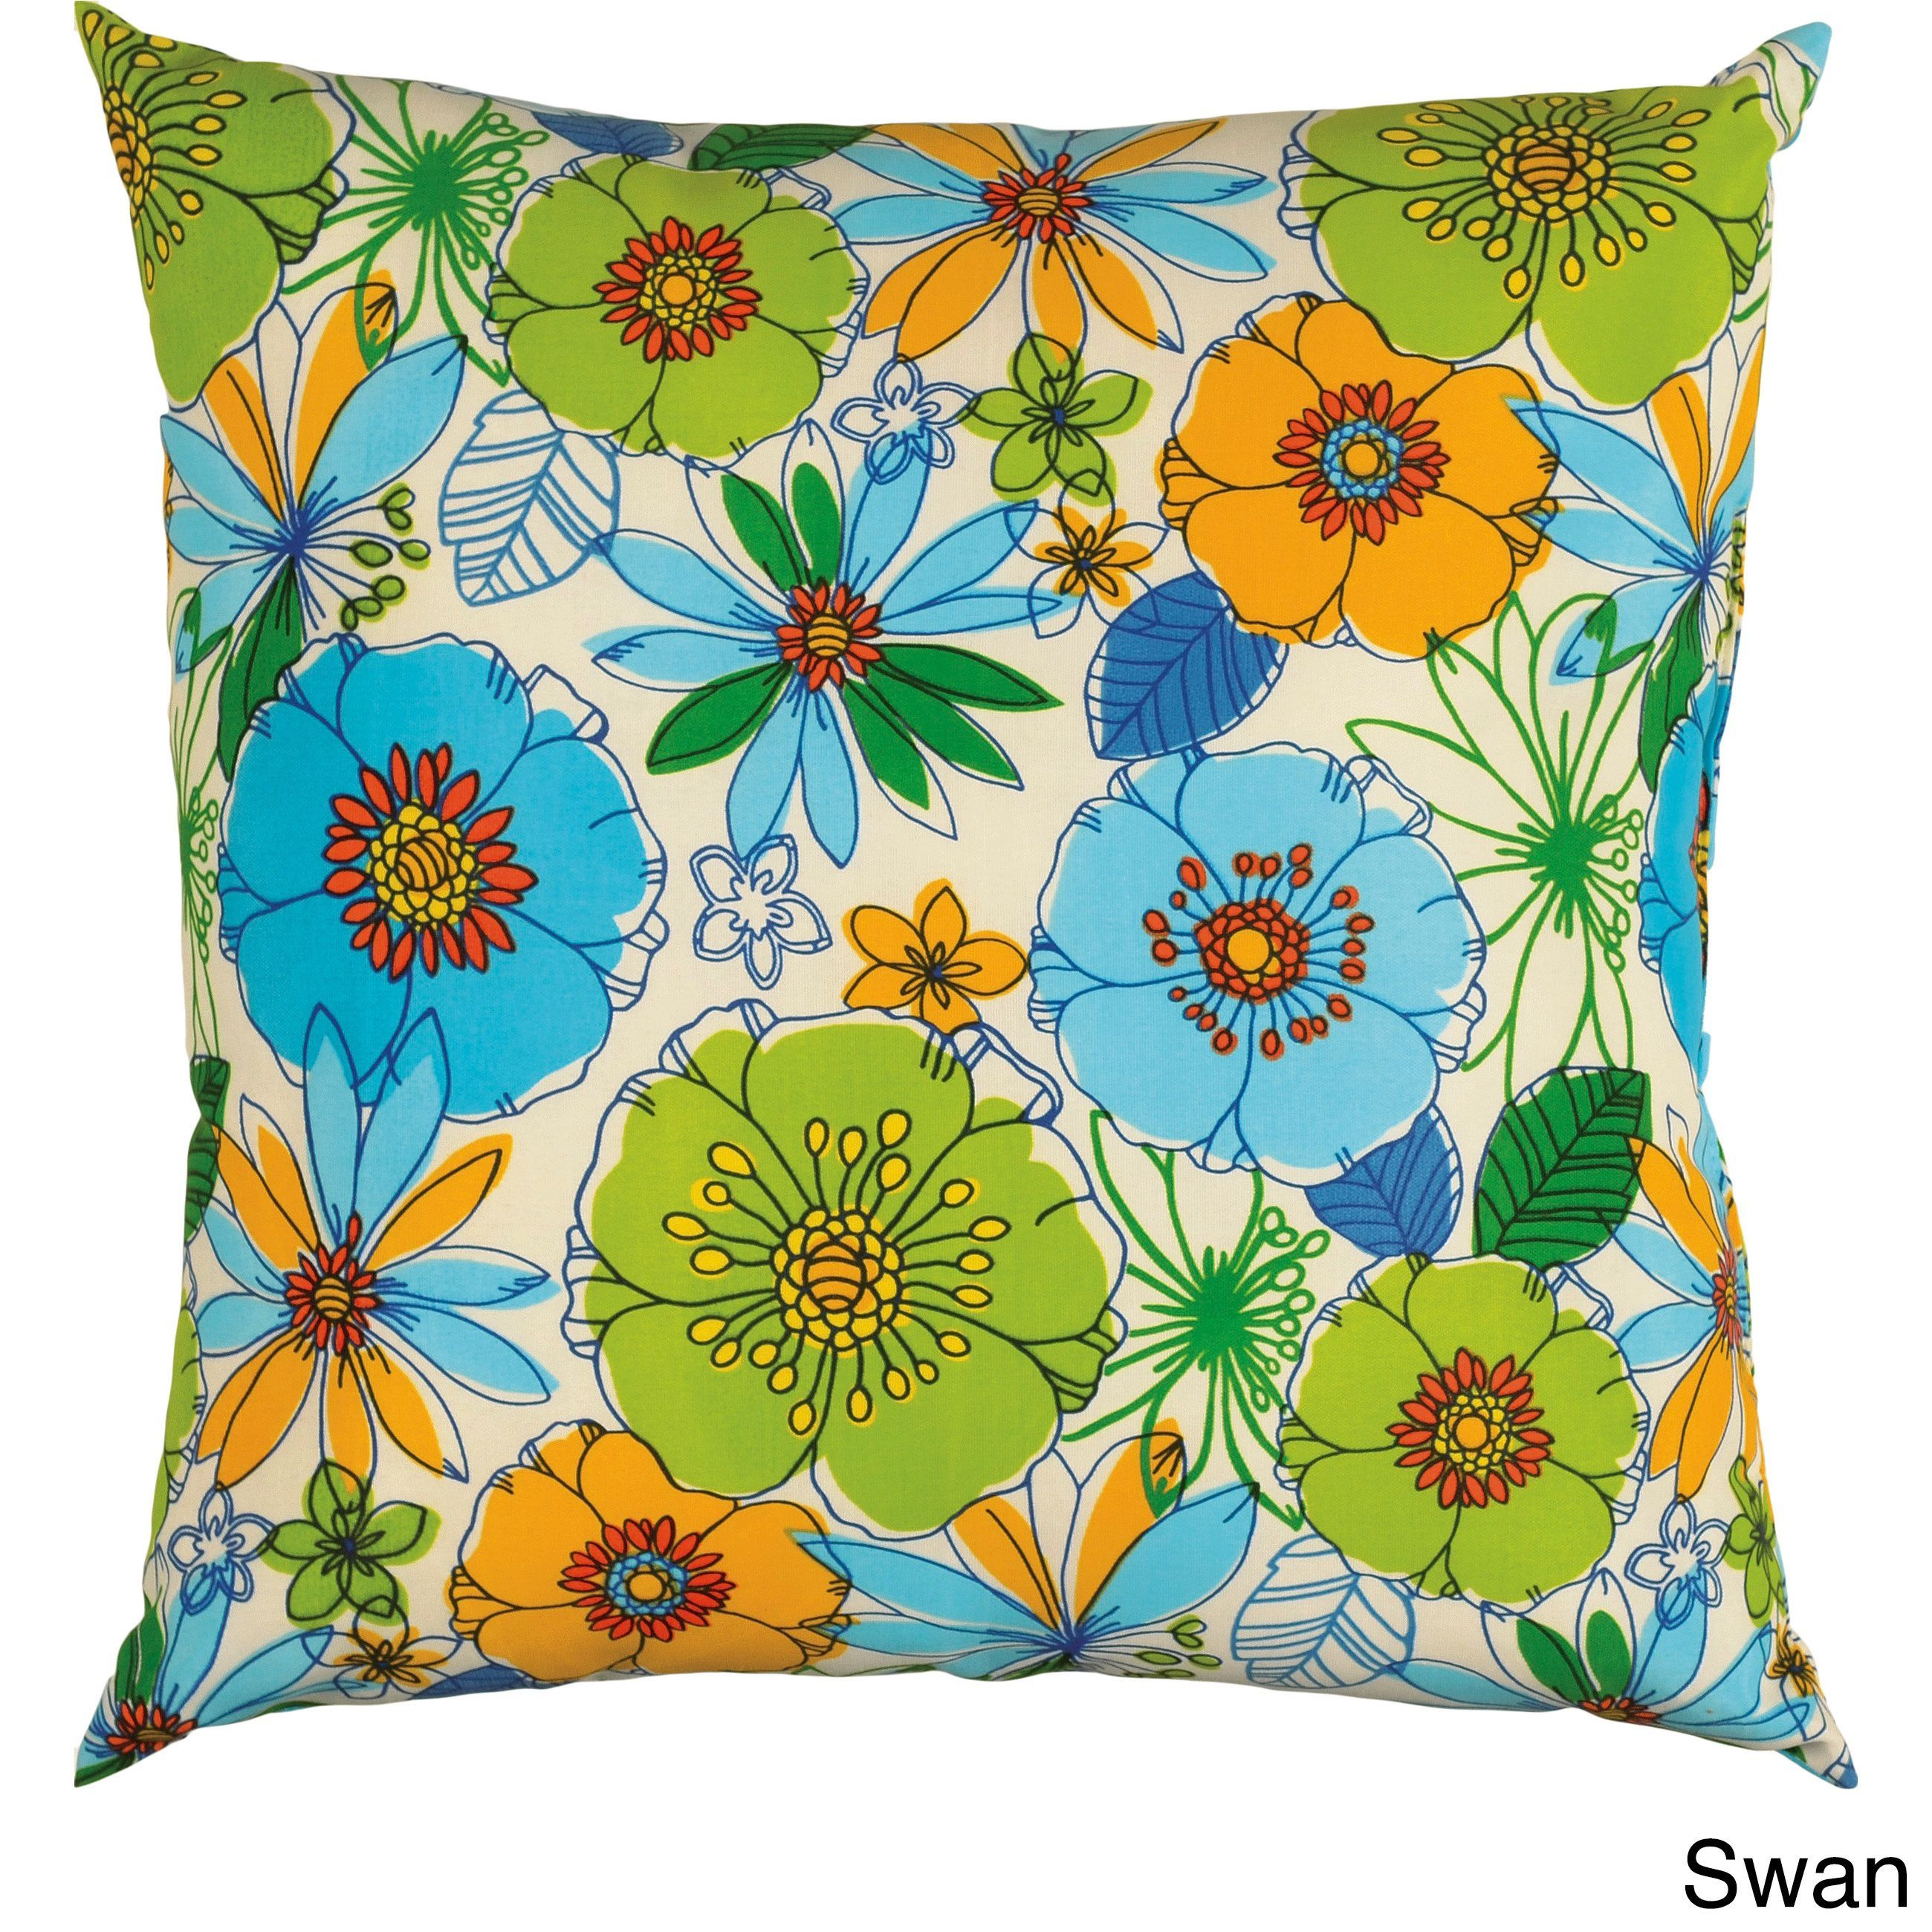 Rizzy Home Similan 22-inch Indoor/Outdoor Accent Pillows (Swan), Blue, Size 22 x 22 (Polyester, Floral)